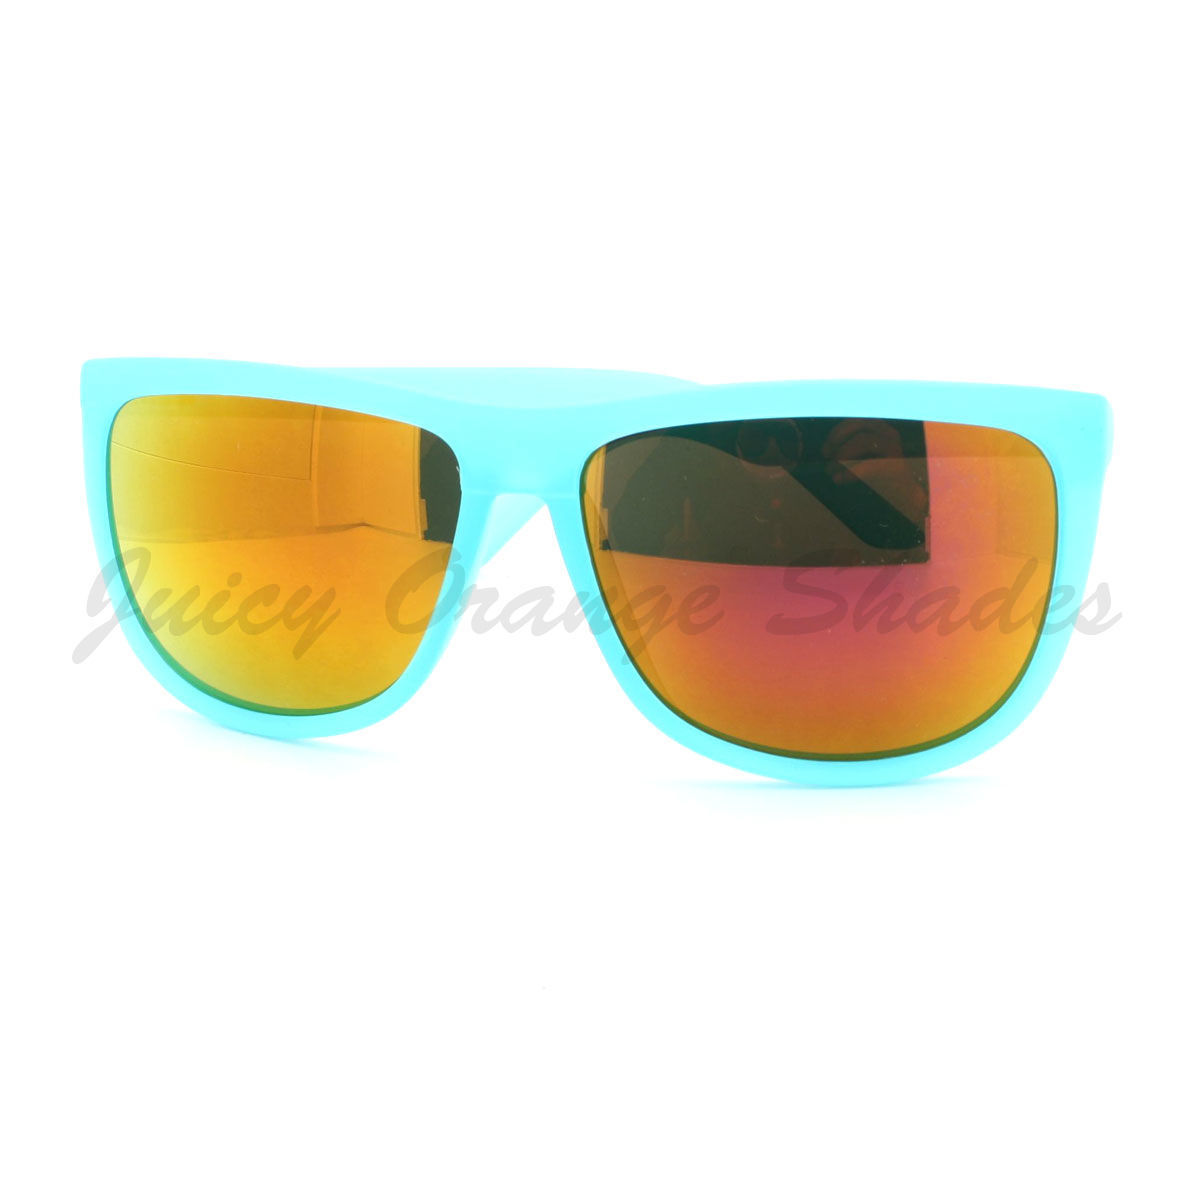 Oversized Square Sunglasses Matted Bright Summer Colors Multicolor Lens